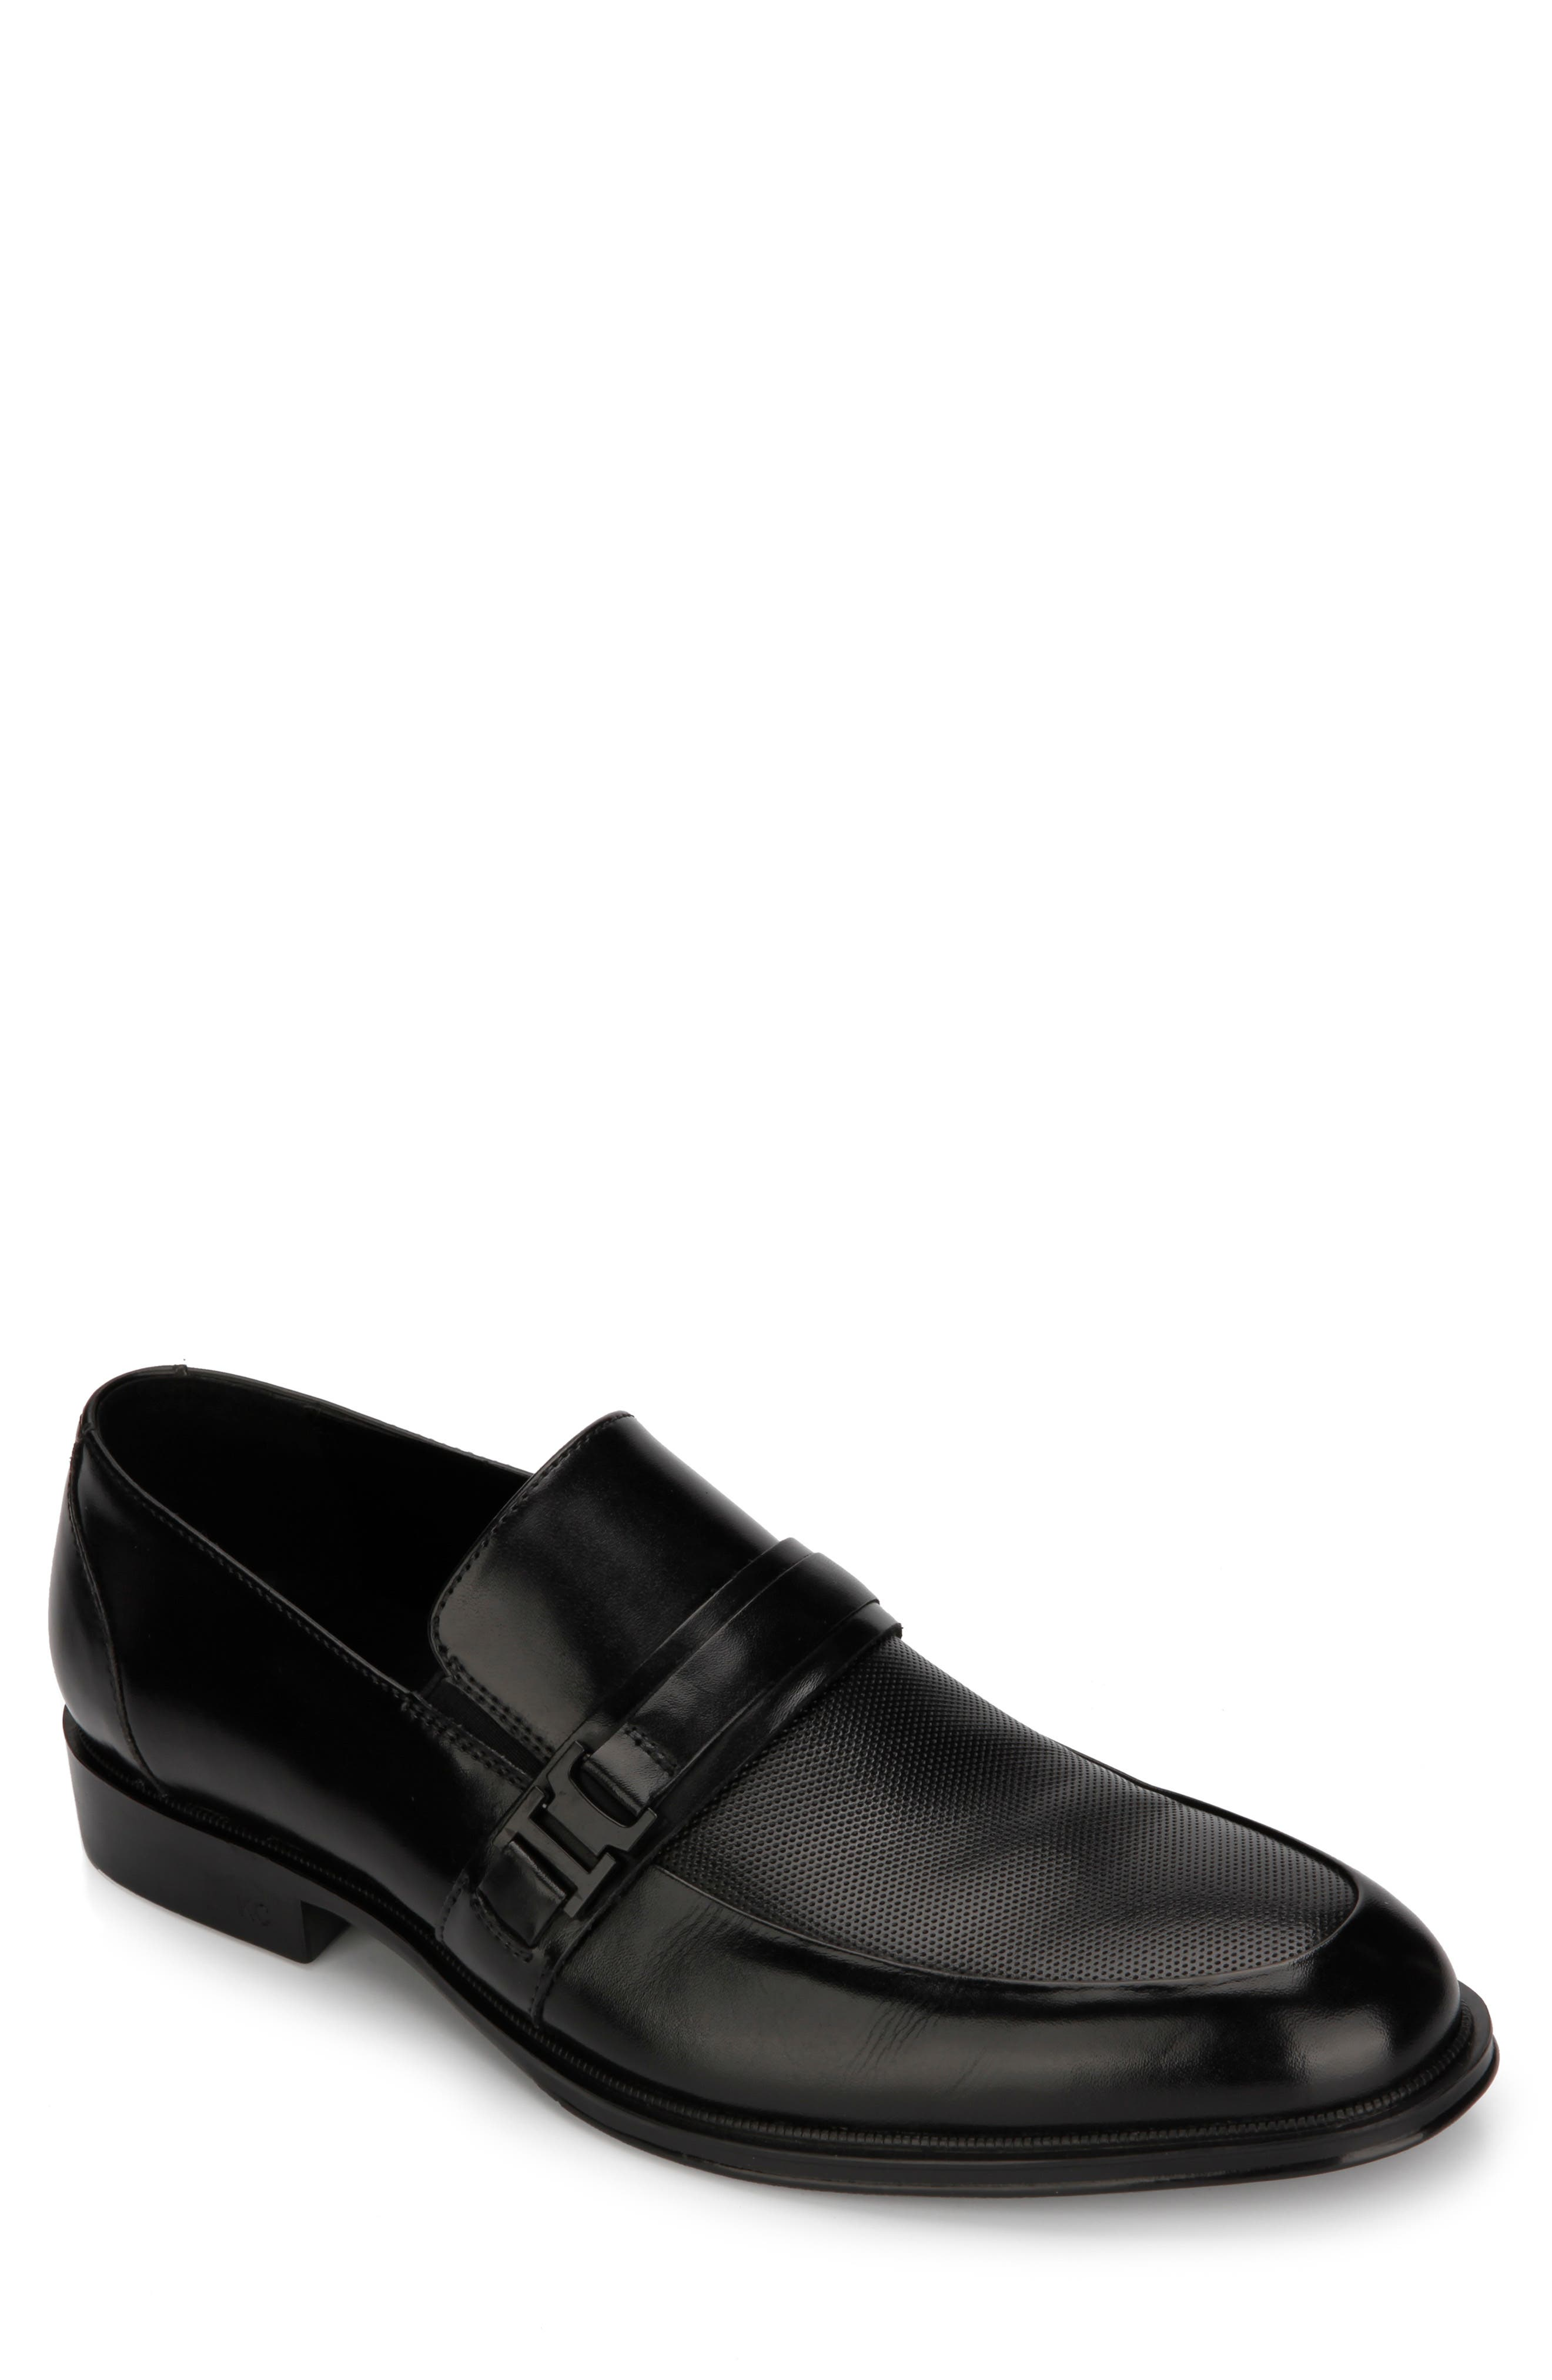 REACTION KENNETH COLE Zac Embossed Slip-On, Main, color, BLACK